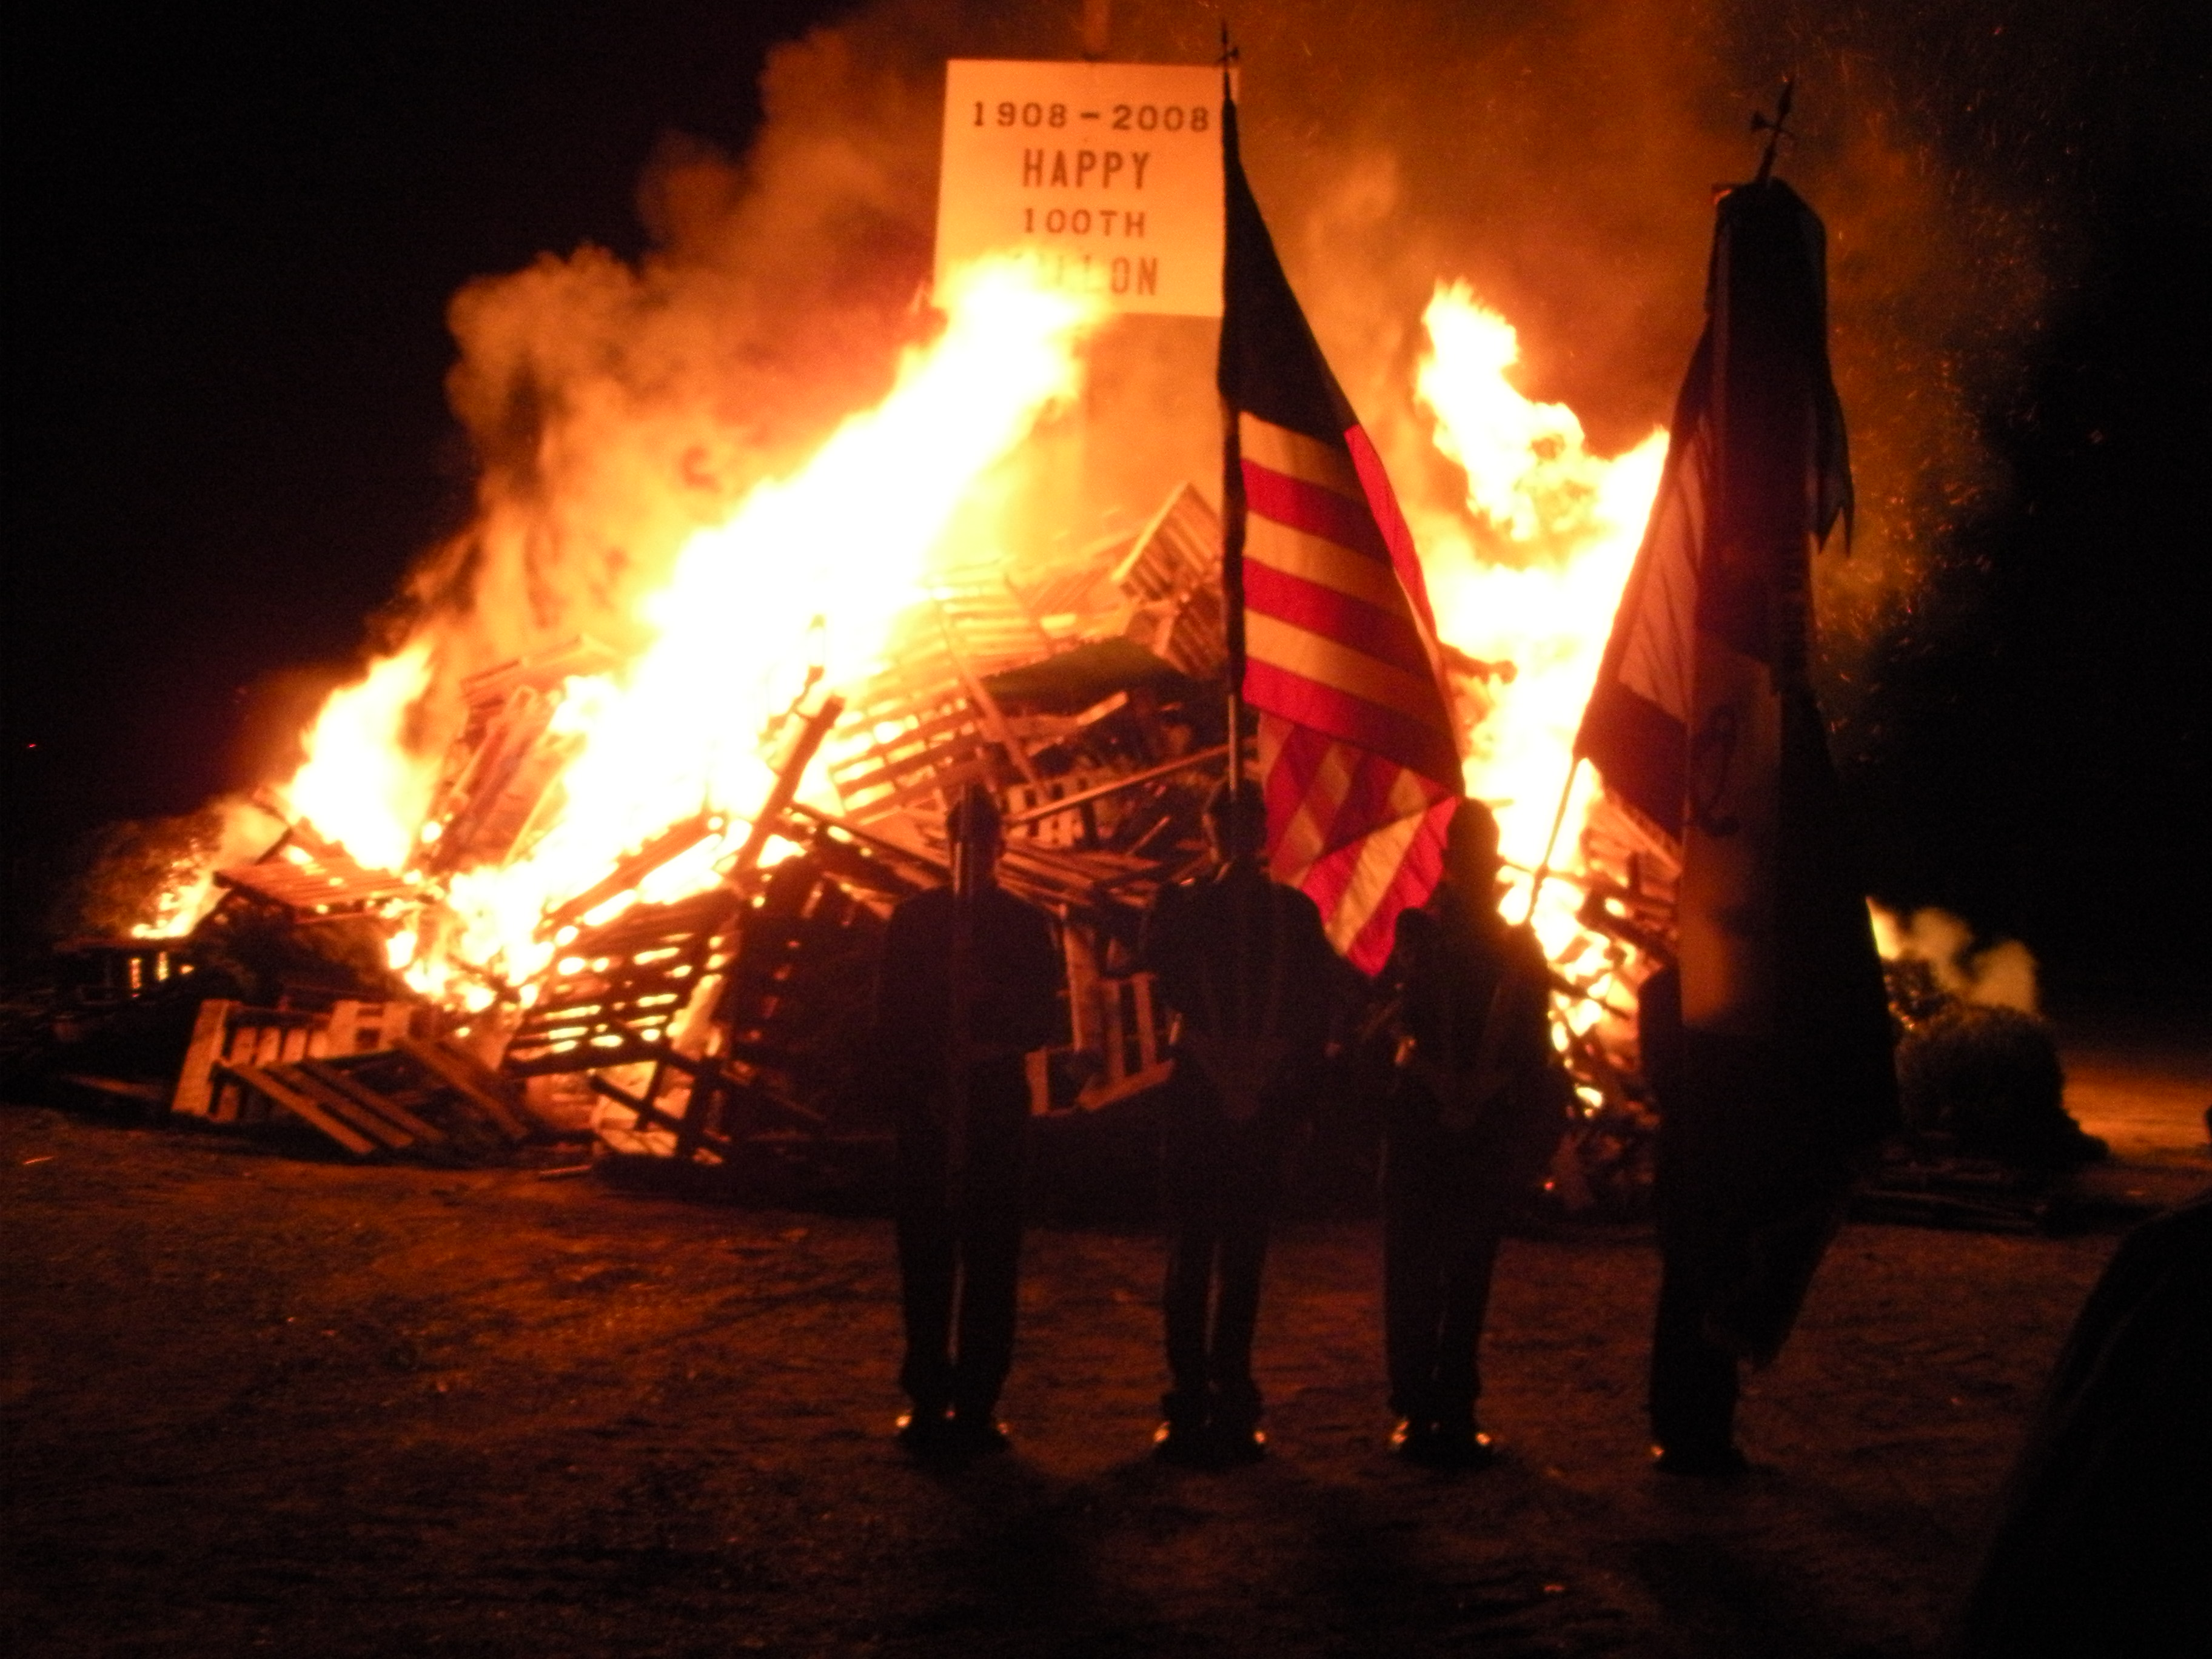 People Holding an American Flag Stand Before the Bonfire